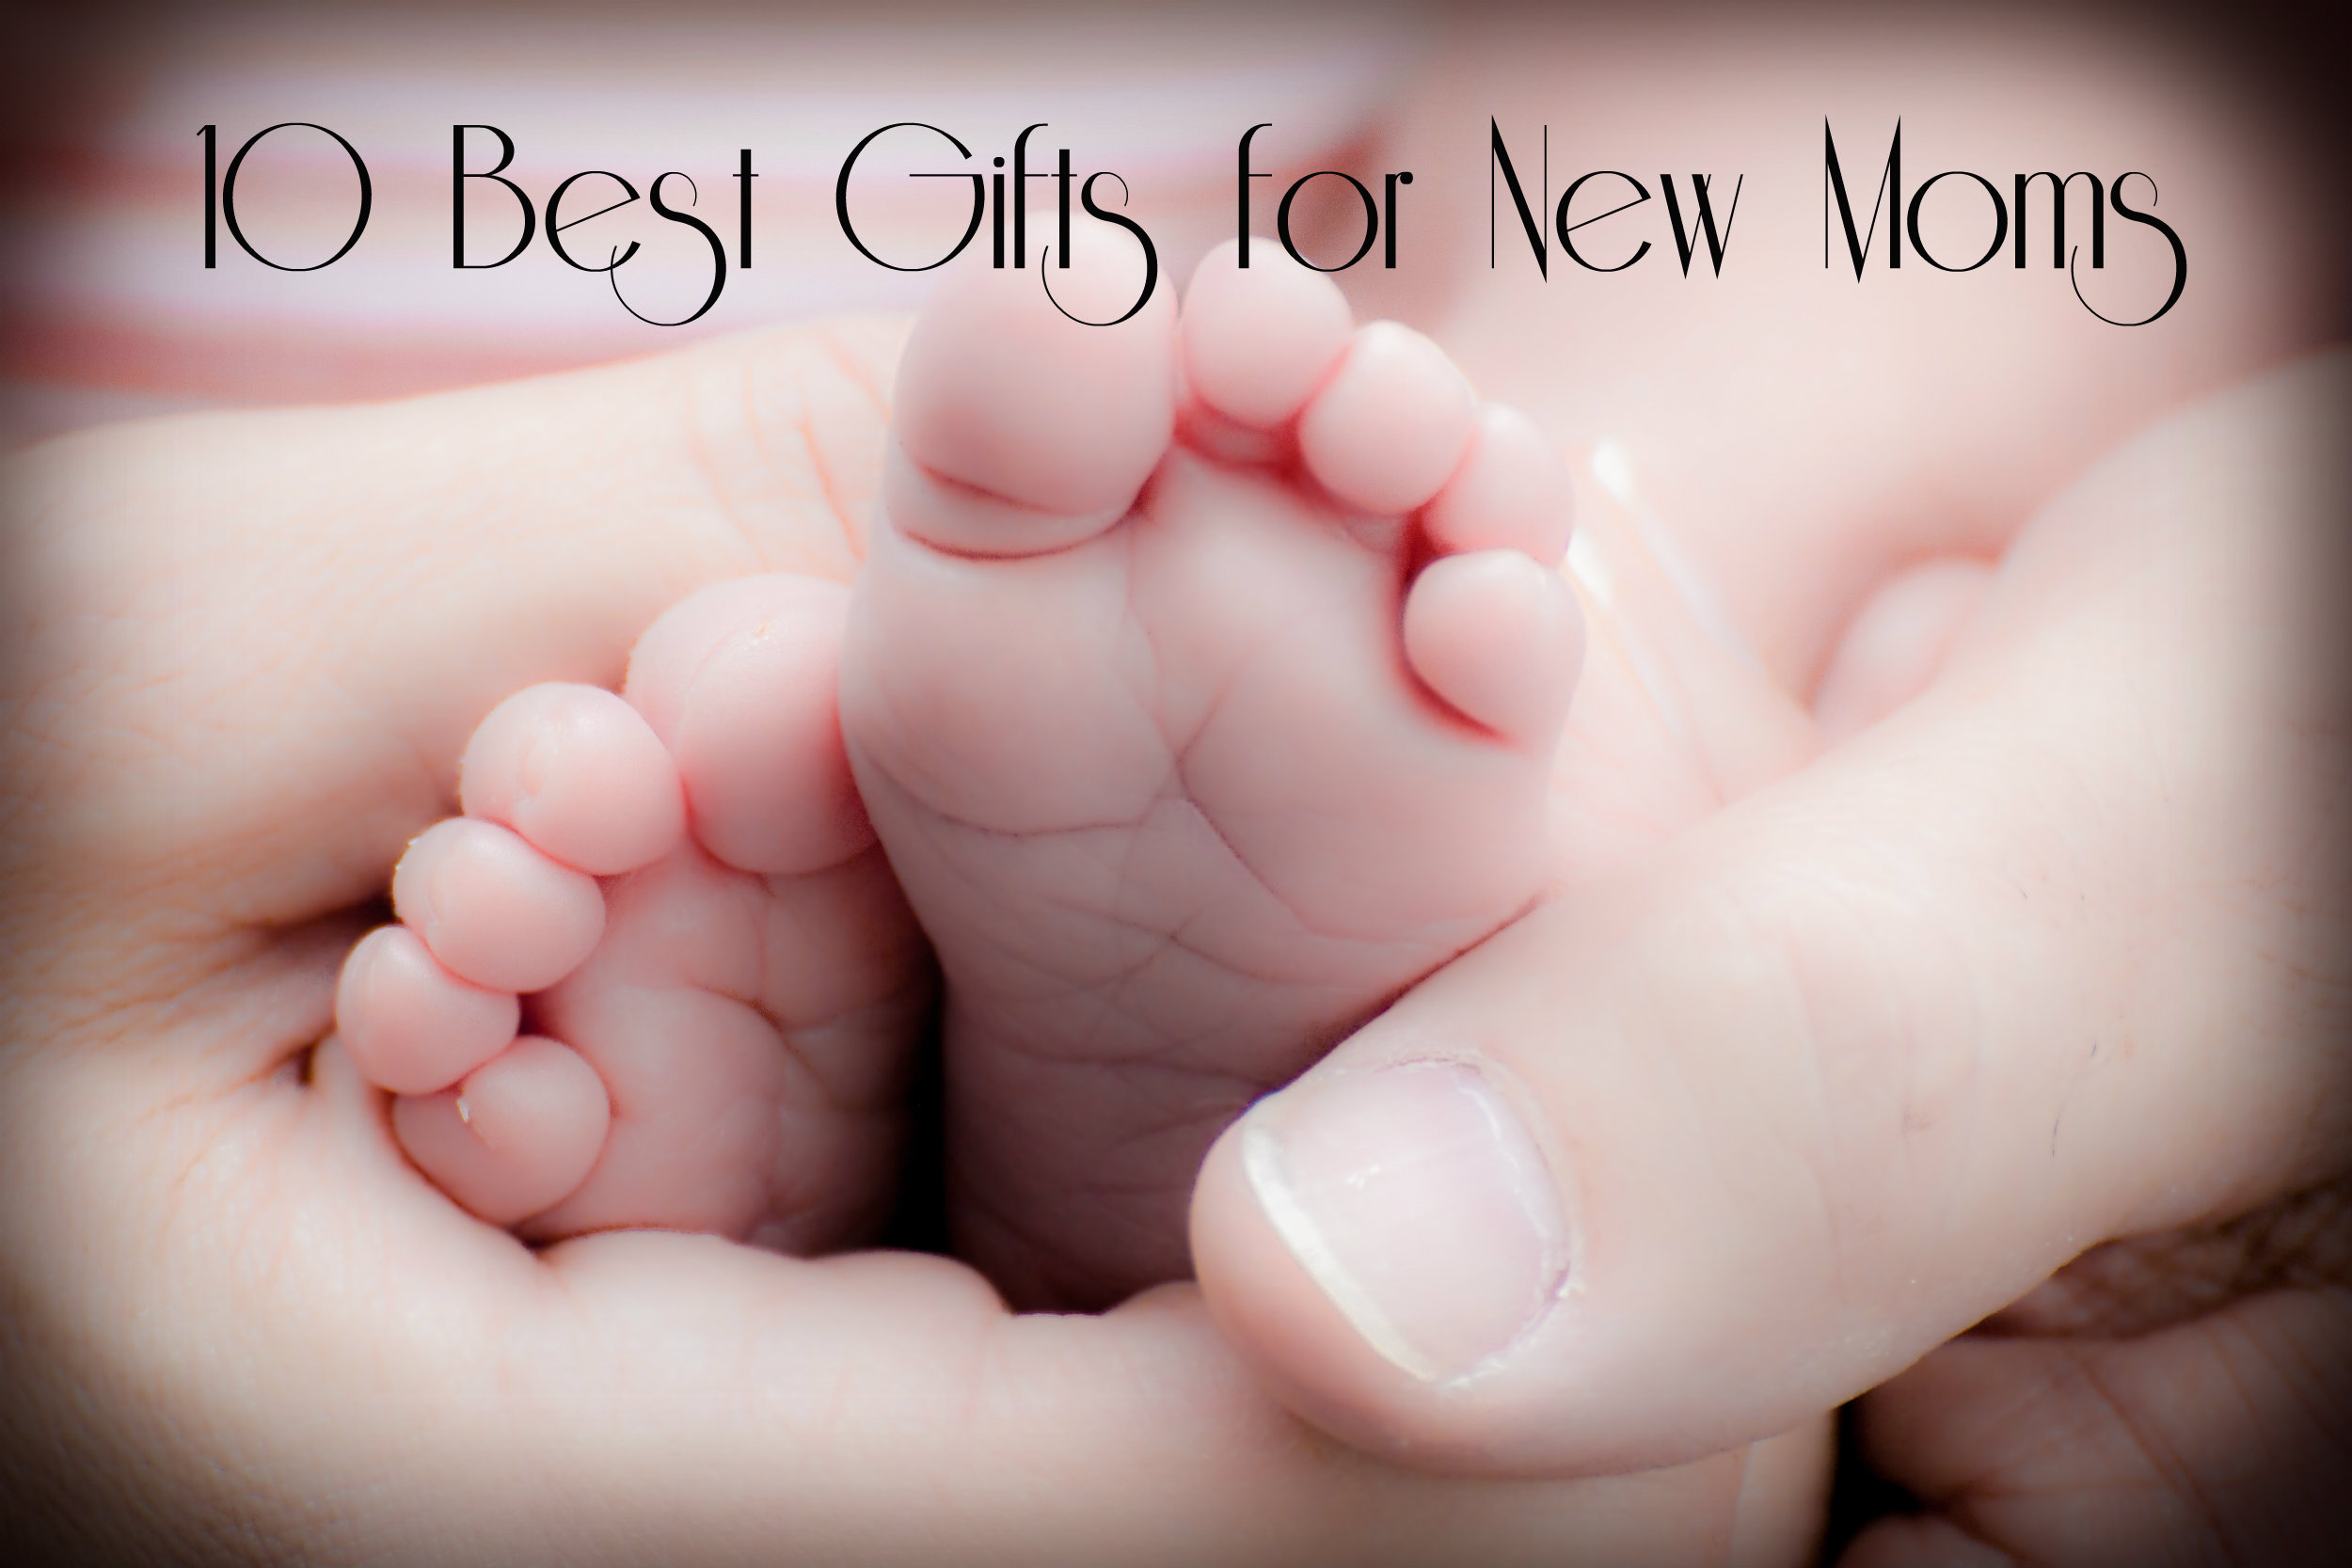 Best Gifts for New Moms in 2018